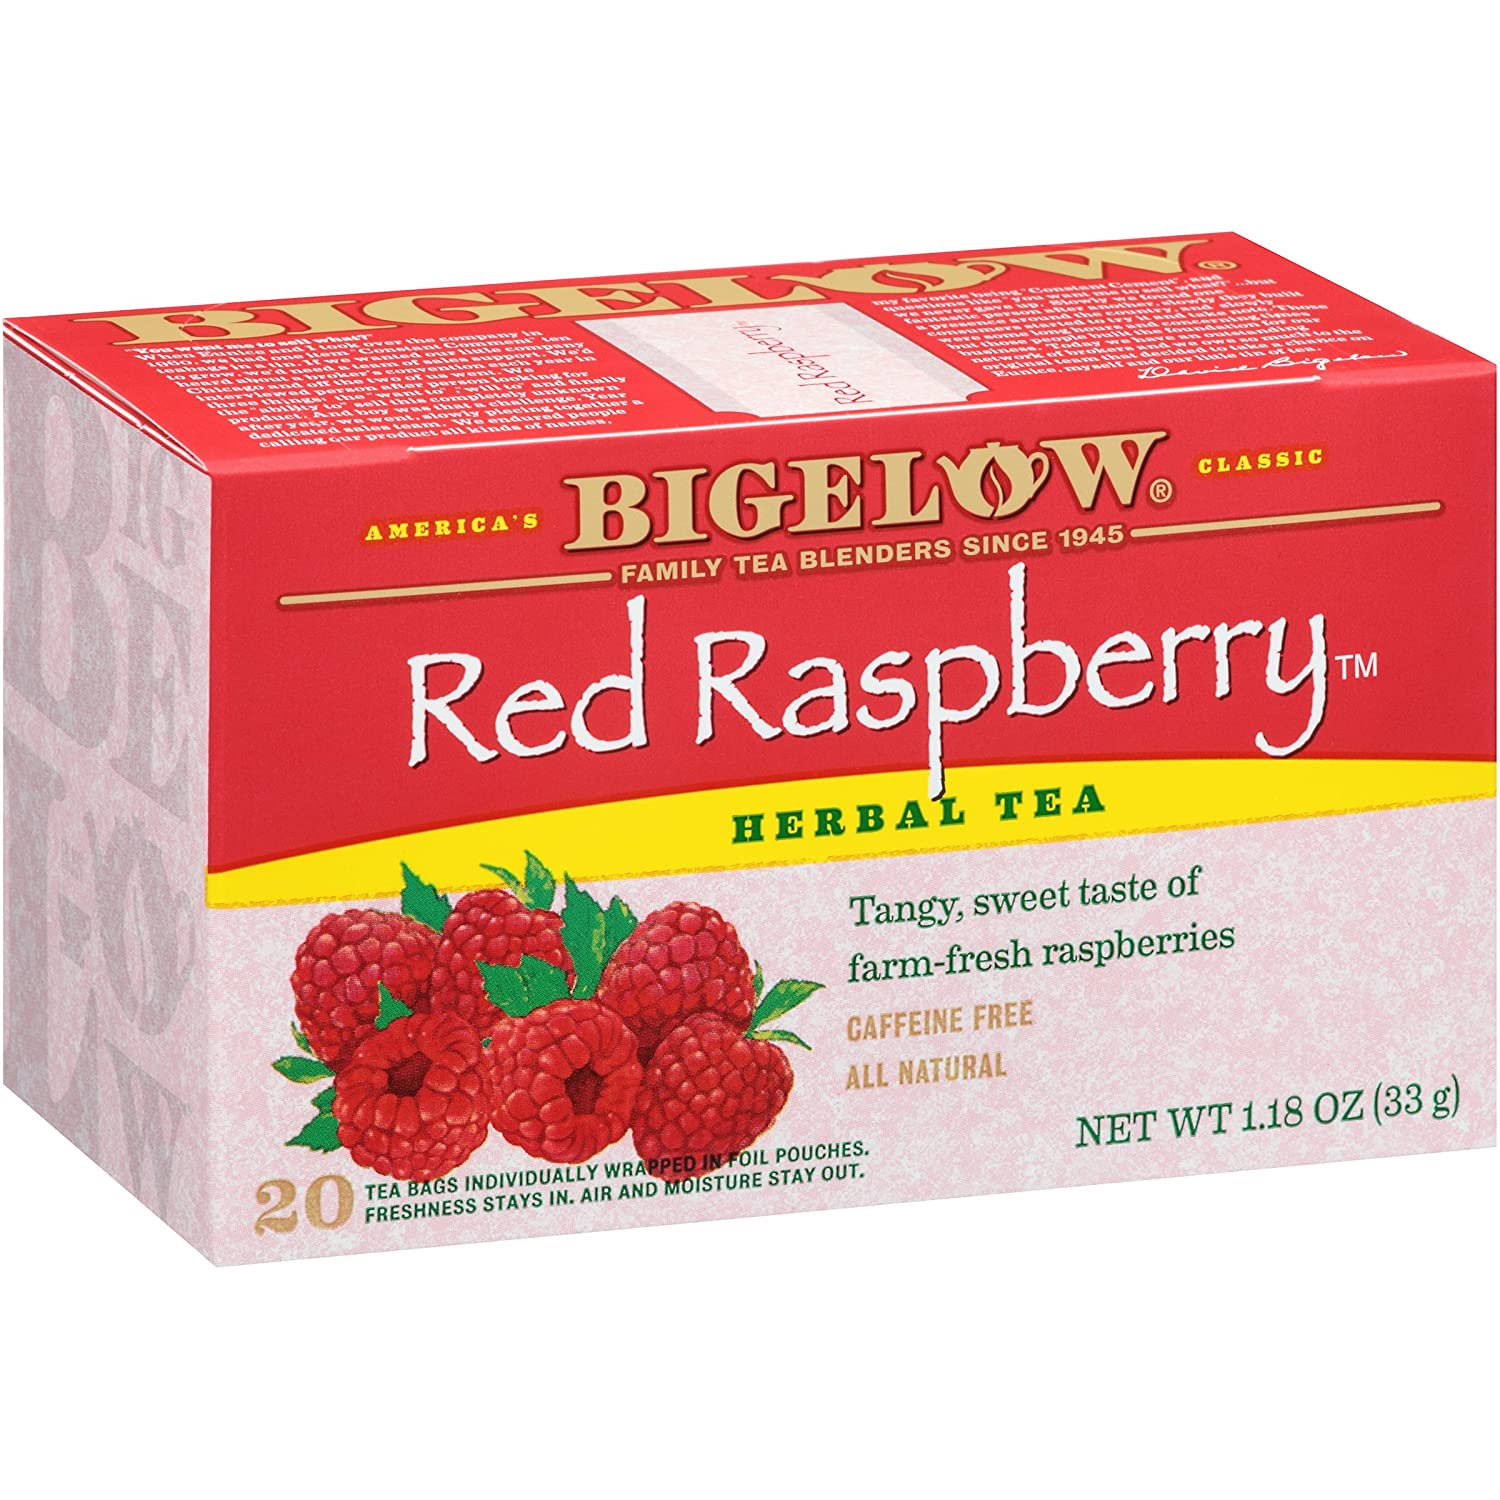 Bigelow Red Raspberry Herbal Tea 20 Bags (Pack of 6), 120 Tea Bags Total. Caffeine-Free Individual Herbal Tisane Bags, for Hot Tea or Iced Tea, Drink Plain or Sweetened with Honey or Sugar